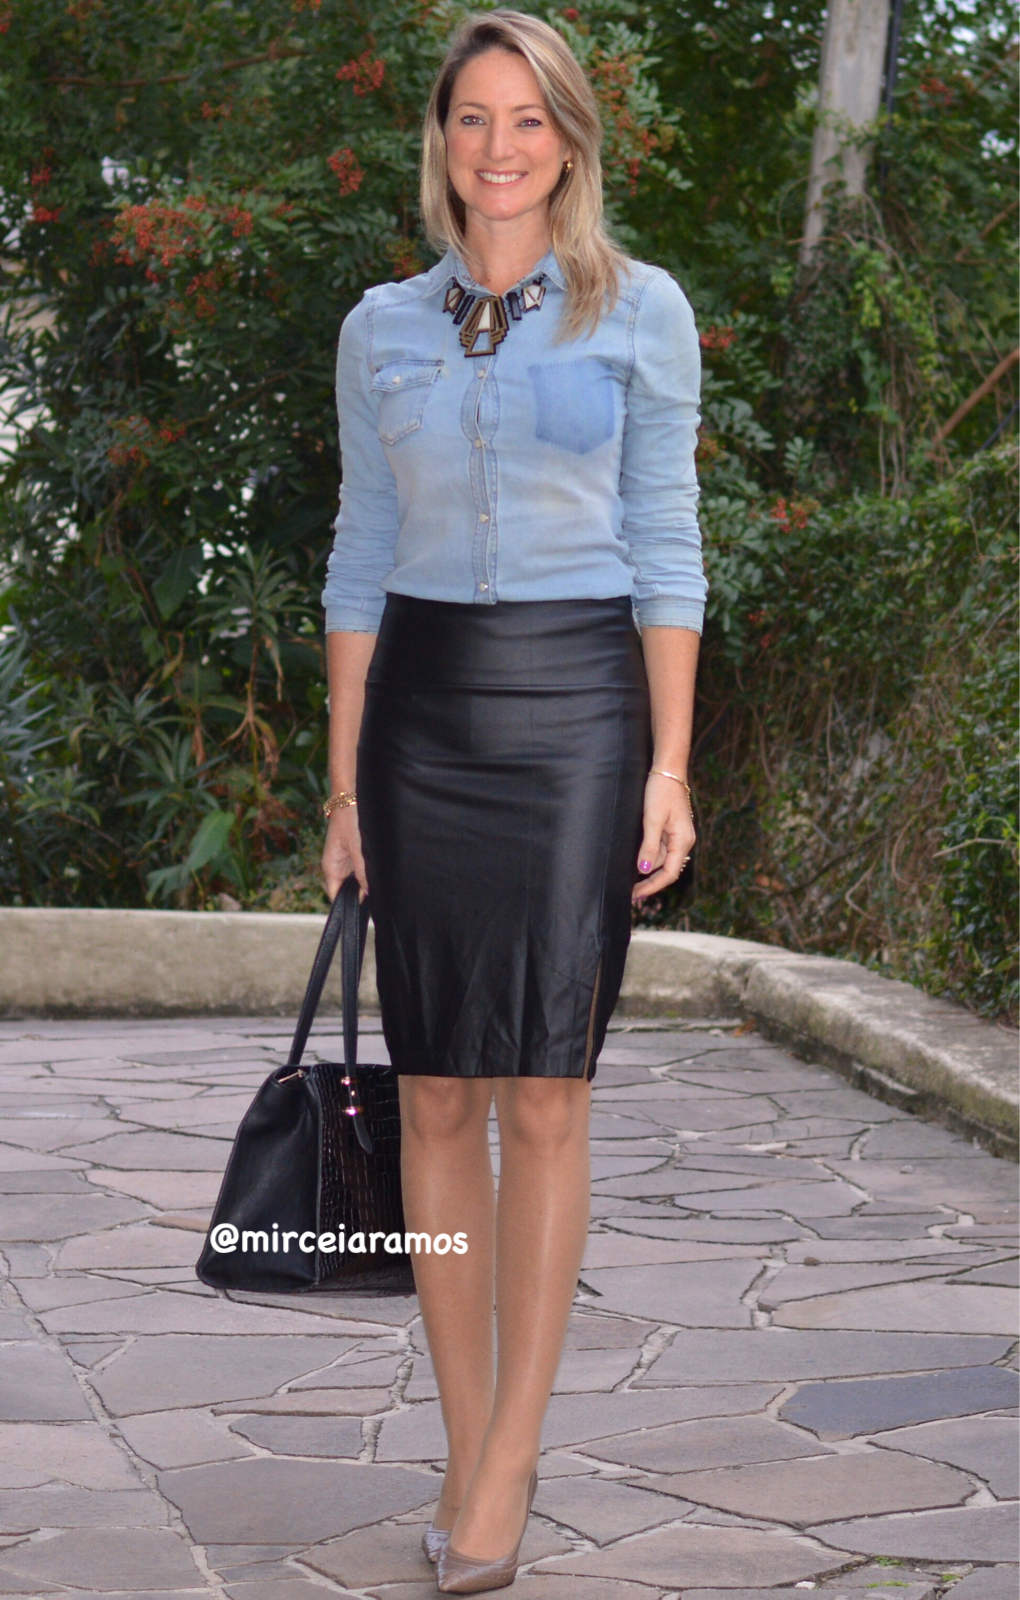 2bb660c1f8 ... corporativo - moda no trabalho - work outfit - office outfit - spring  outfit - look executiva - fall outfit - saia Courino -saia couro - camisa  jeans